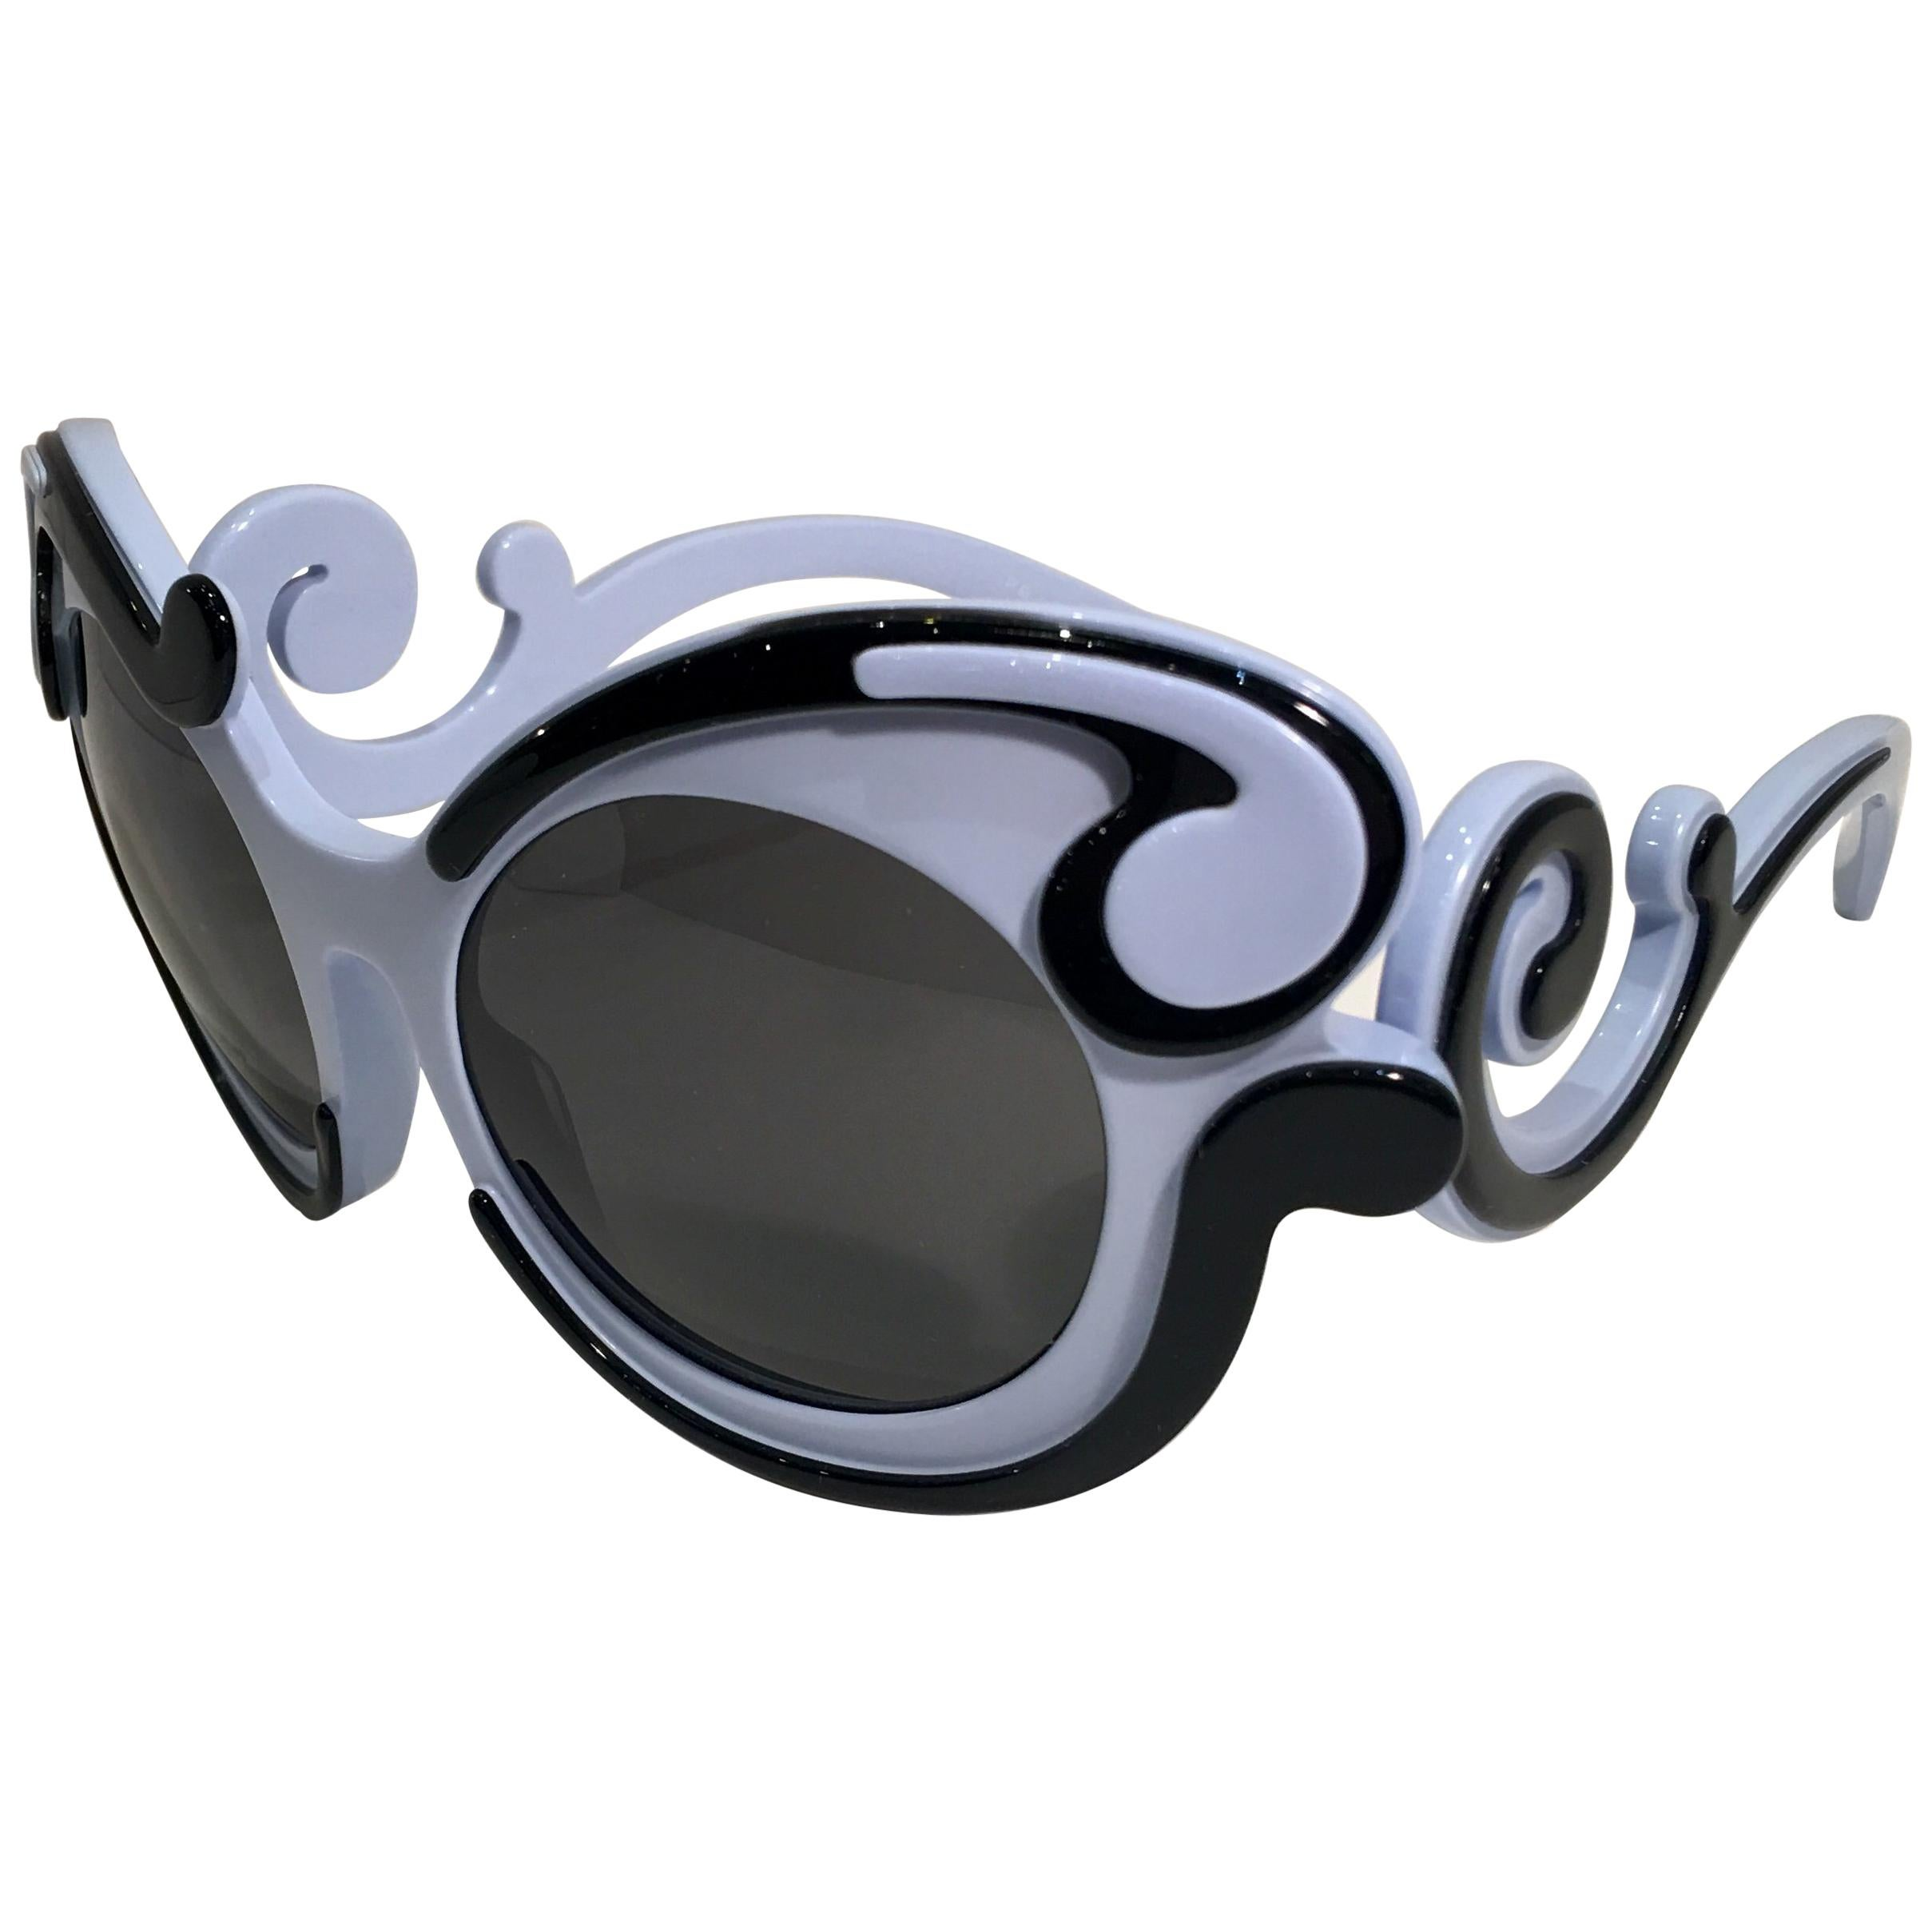 df631f412b2 Prada Minimal Baroque Swirl Sunglasses Italy Periwinkle Great for Easter  For Sale at 1stdibs